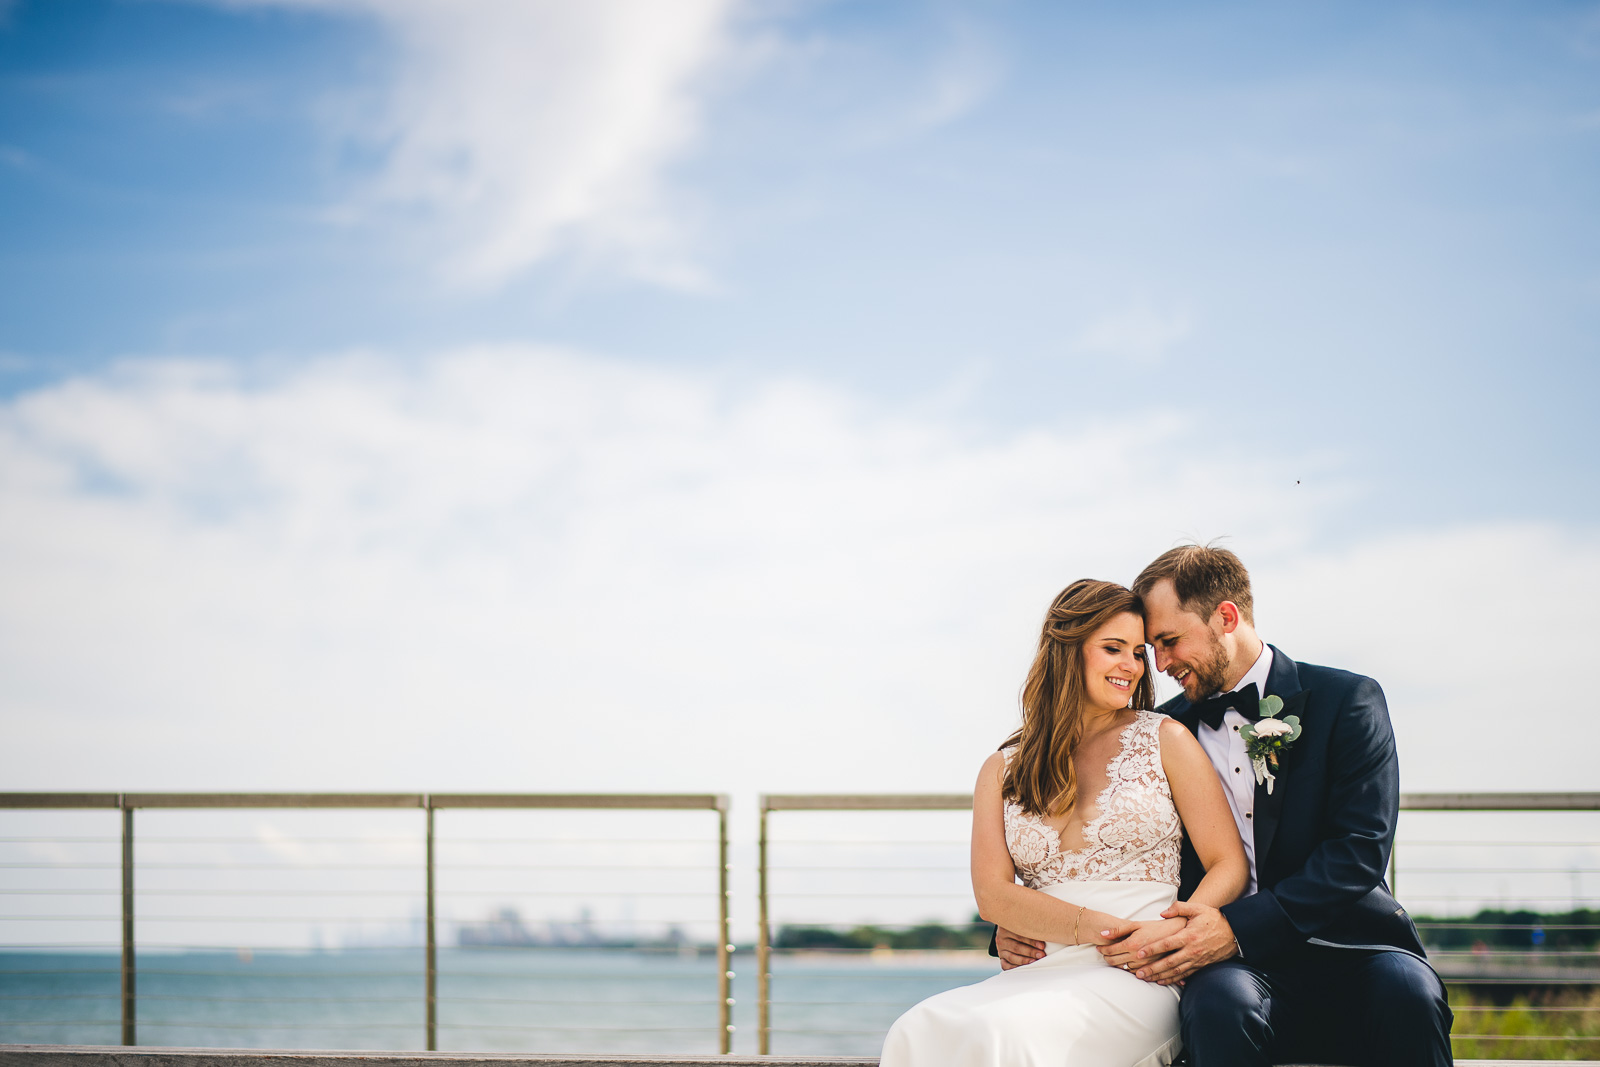 90 chicago wedding photographer best portraits during weddings review - 2018 in Review // My Favorite Chicago Wedding Photography Portraits